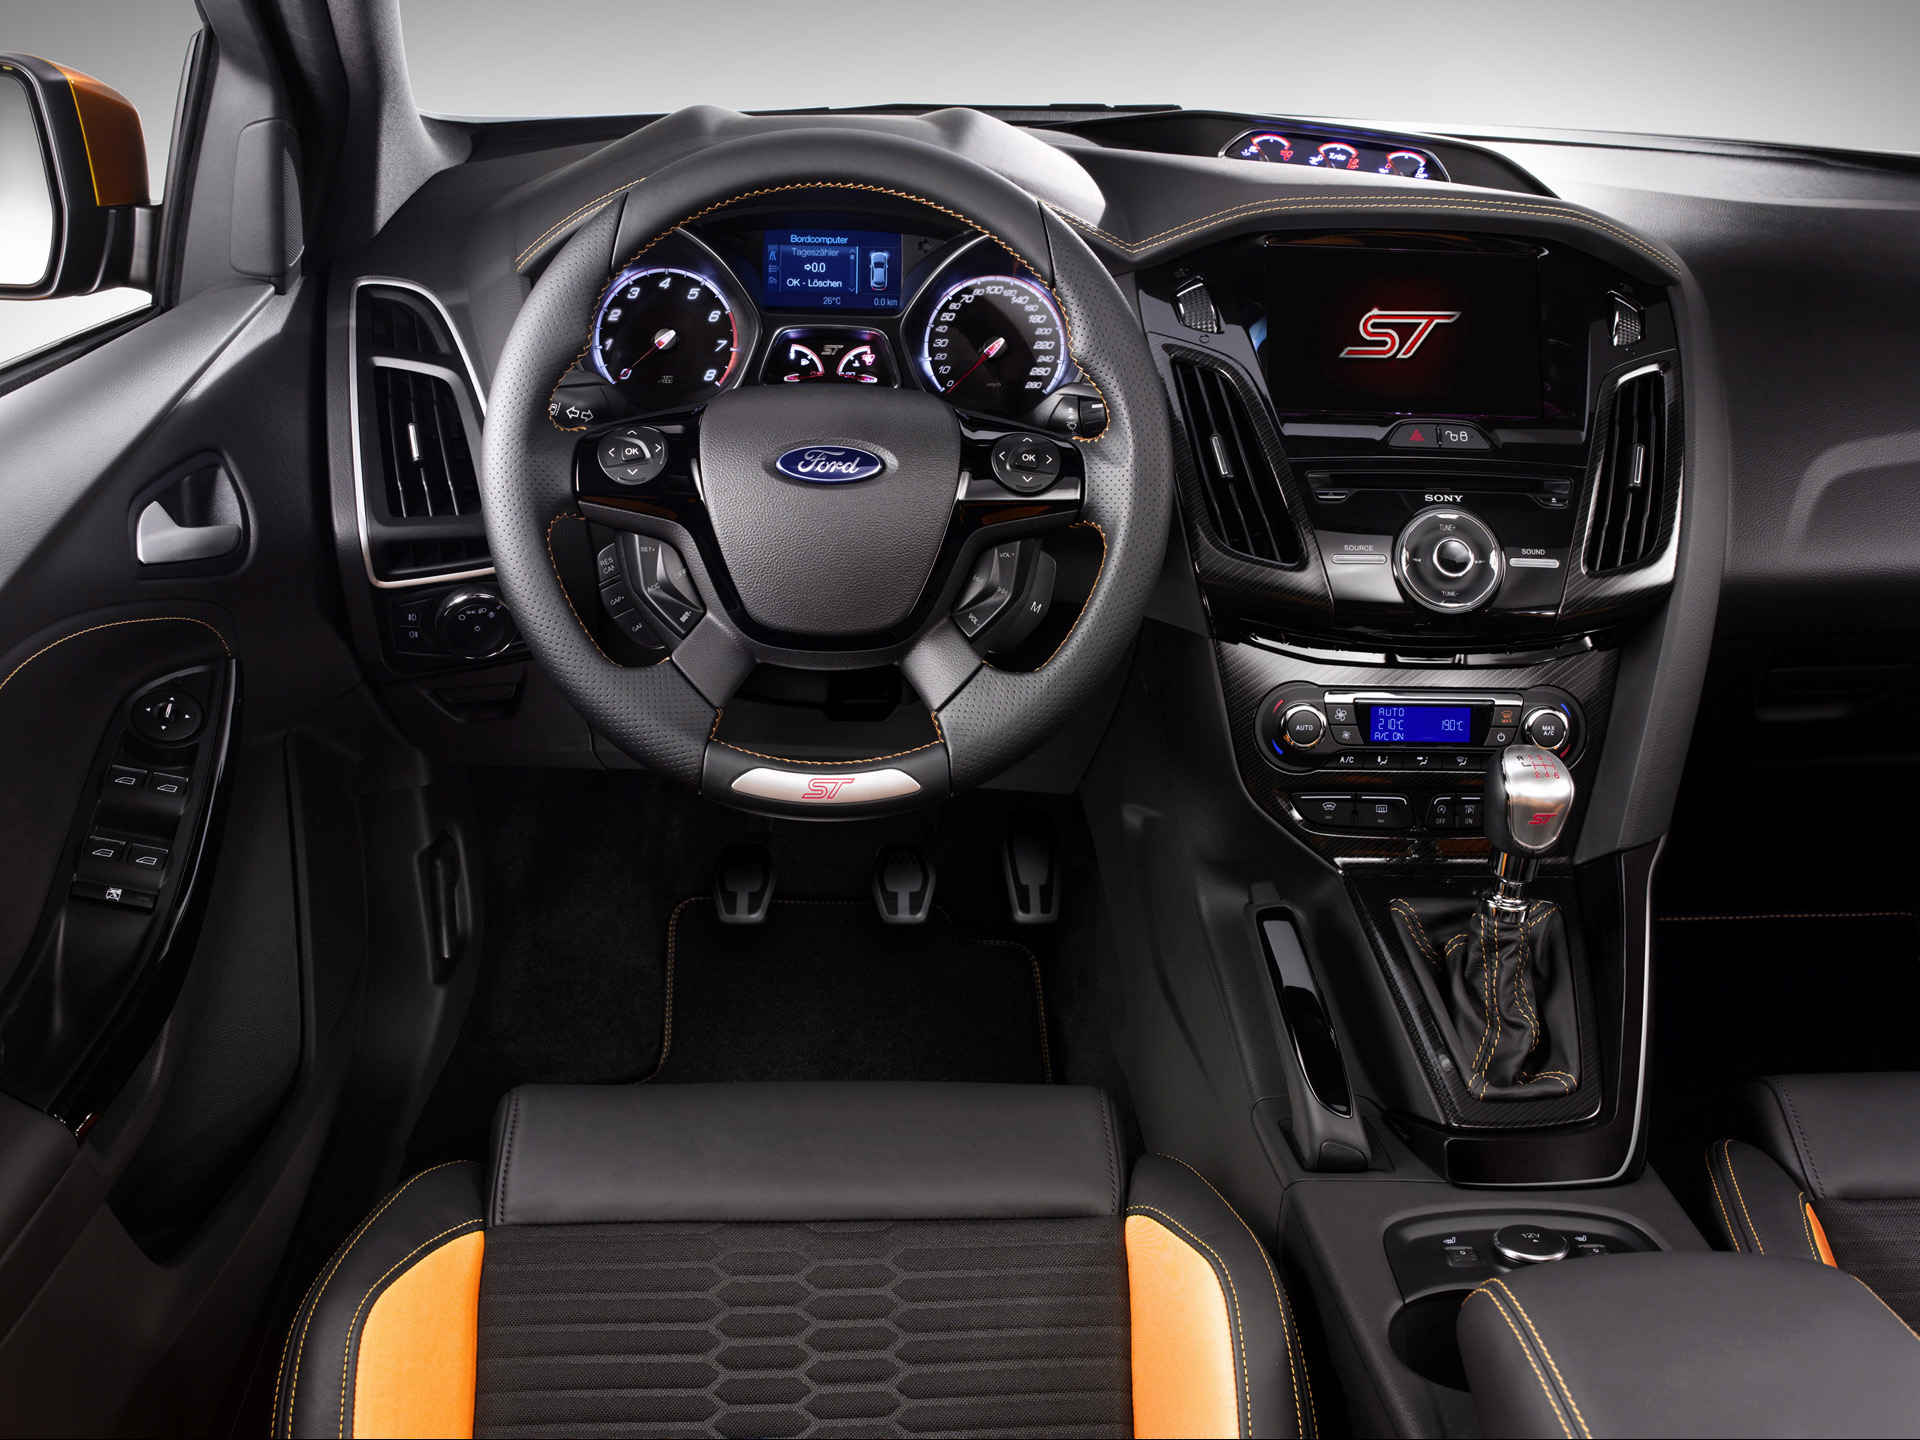 2012 ford focus st dashboard 1920x1440jpg